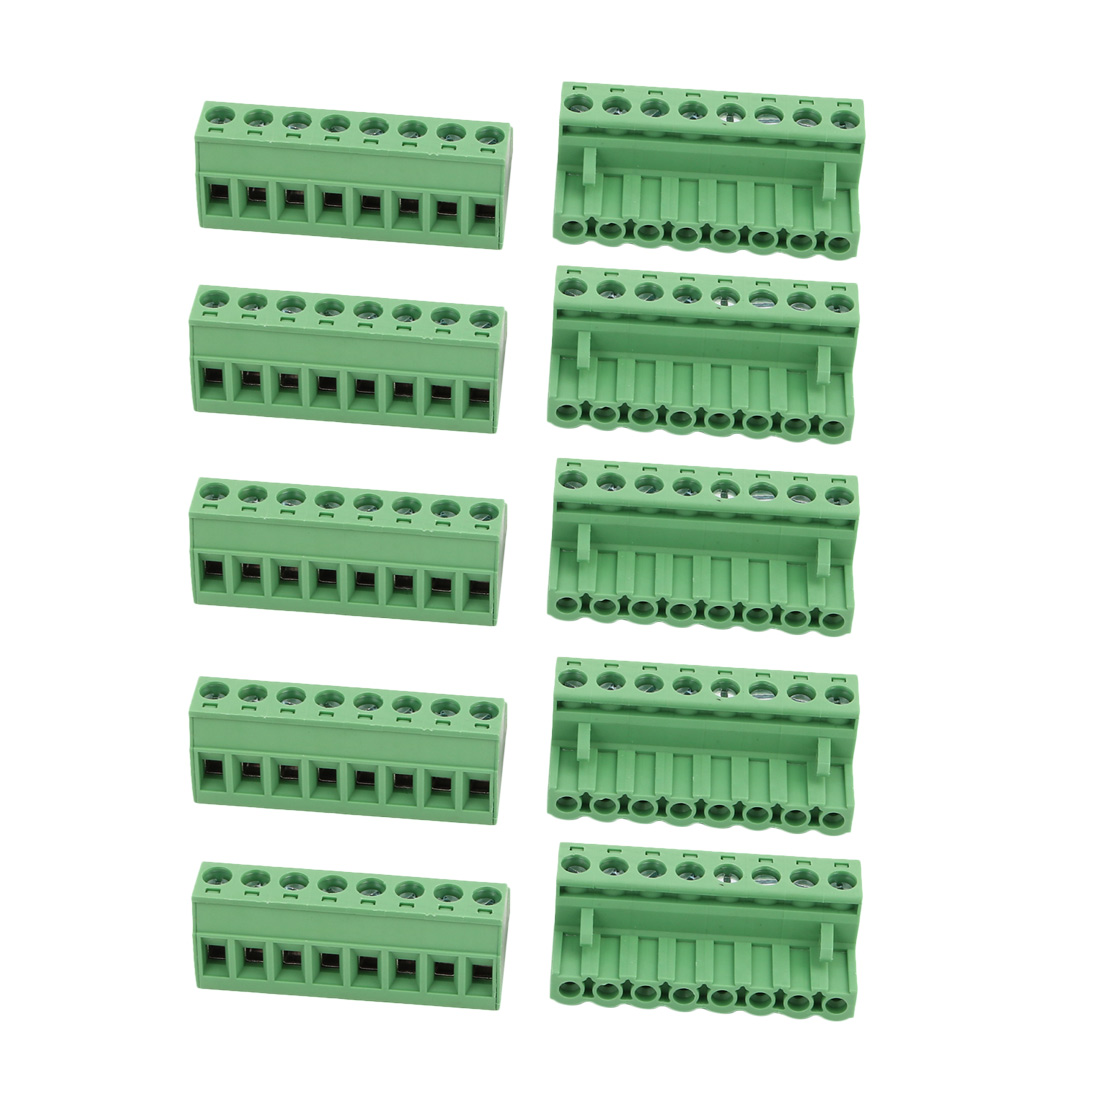 10Pcs AC300V 15A 5.08mm Pitch 8P Terminal Block Wire Connection for PCB Mounting